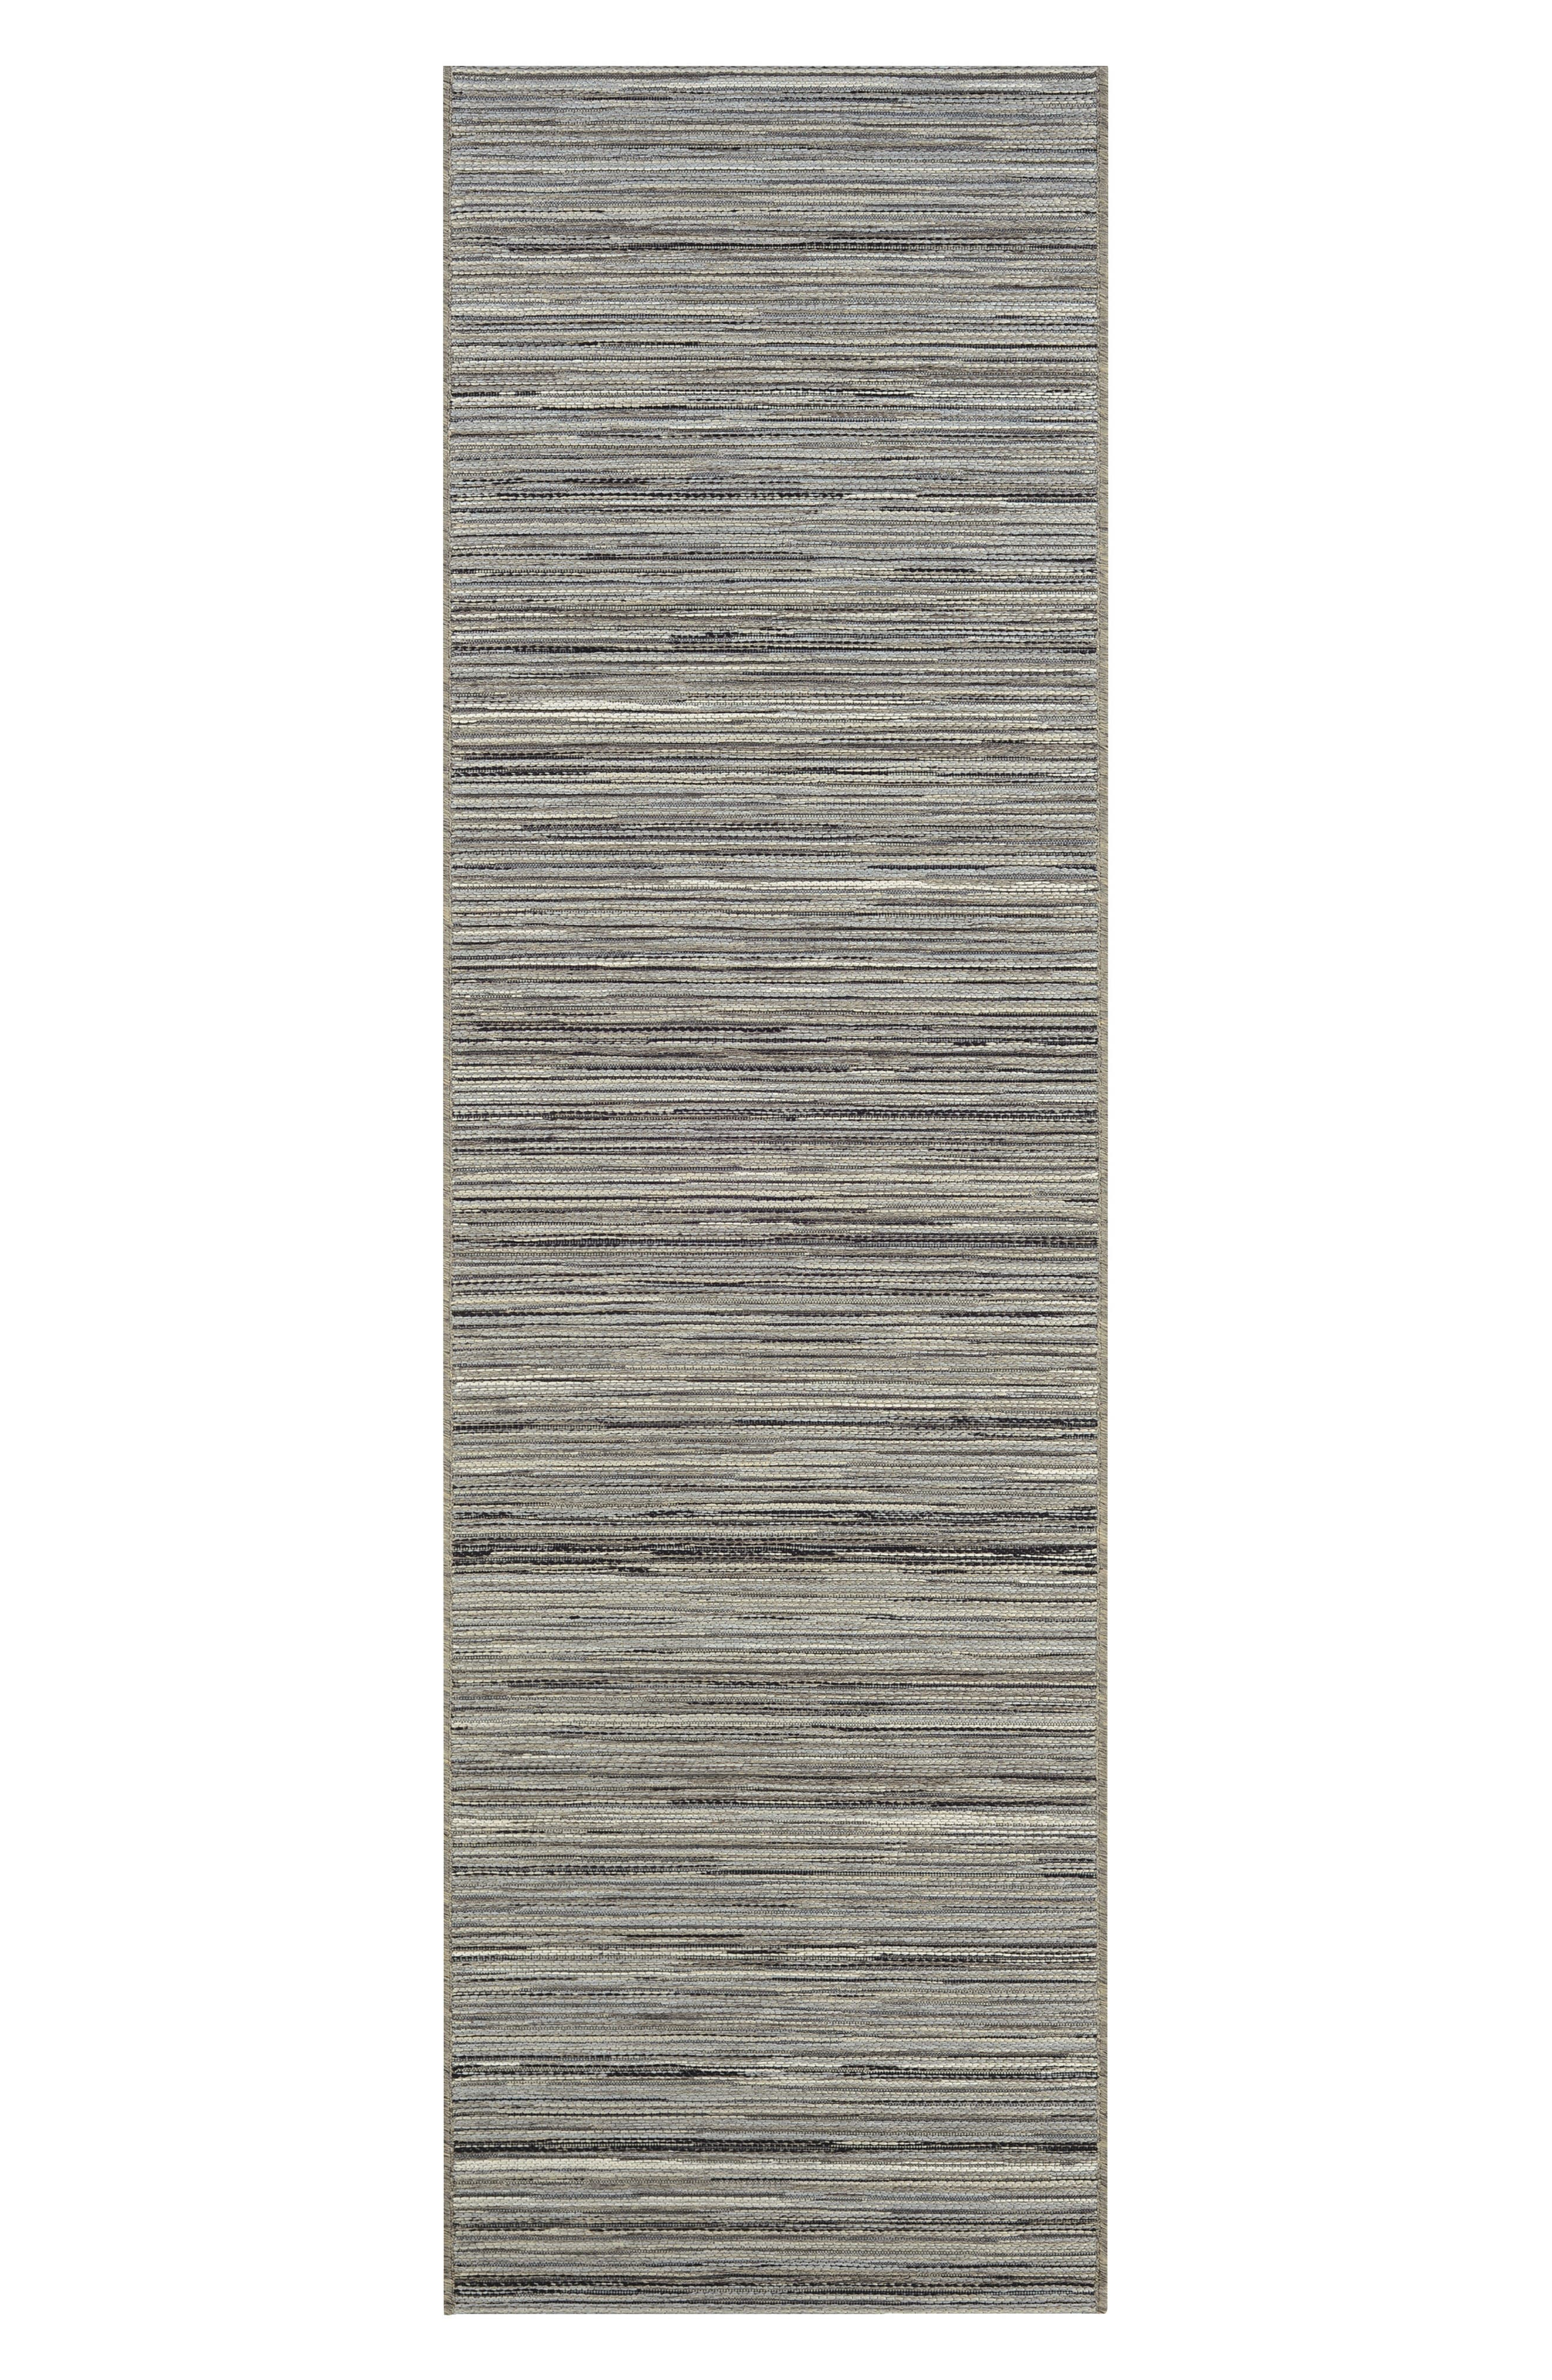 Hinsdale Indoor/Outdoor Rug,                             Alternate thumbnail 2, color,                             025